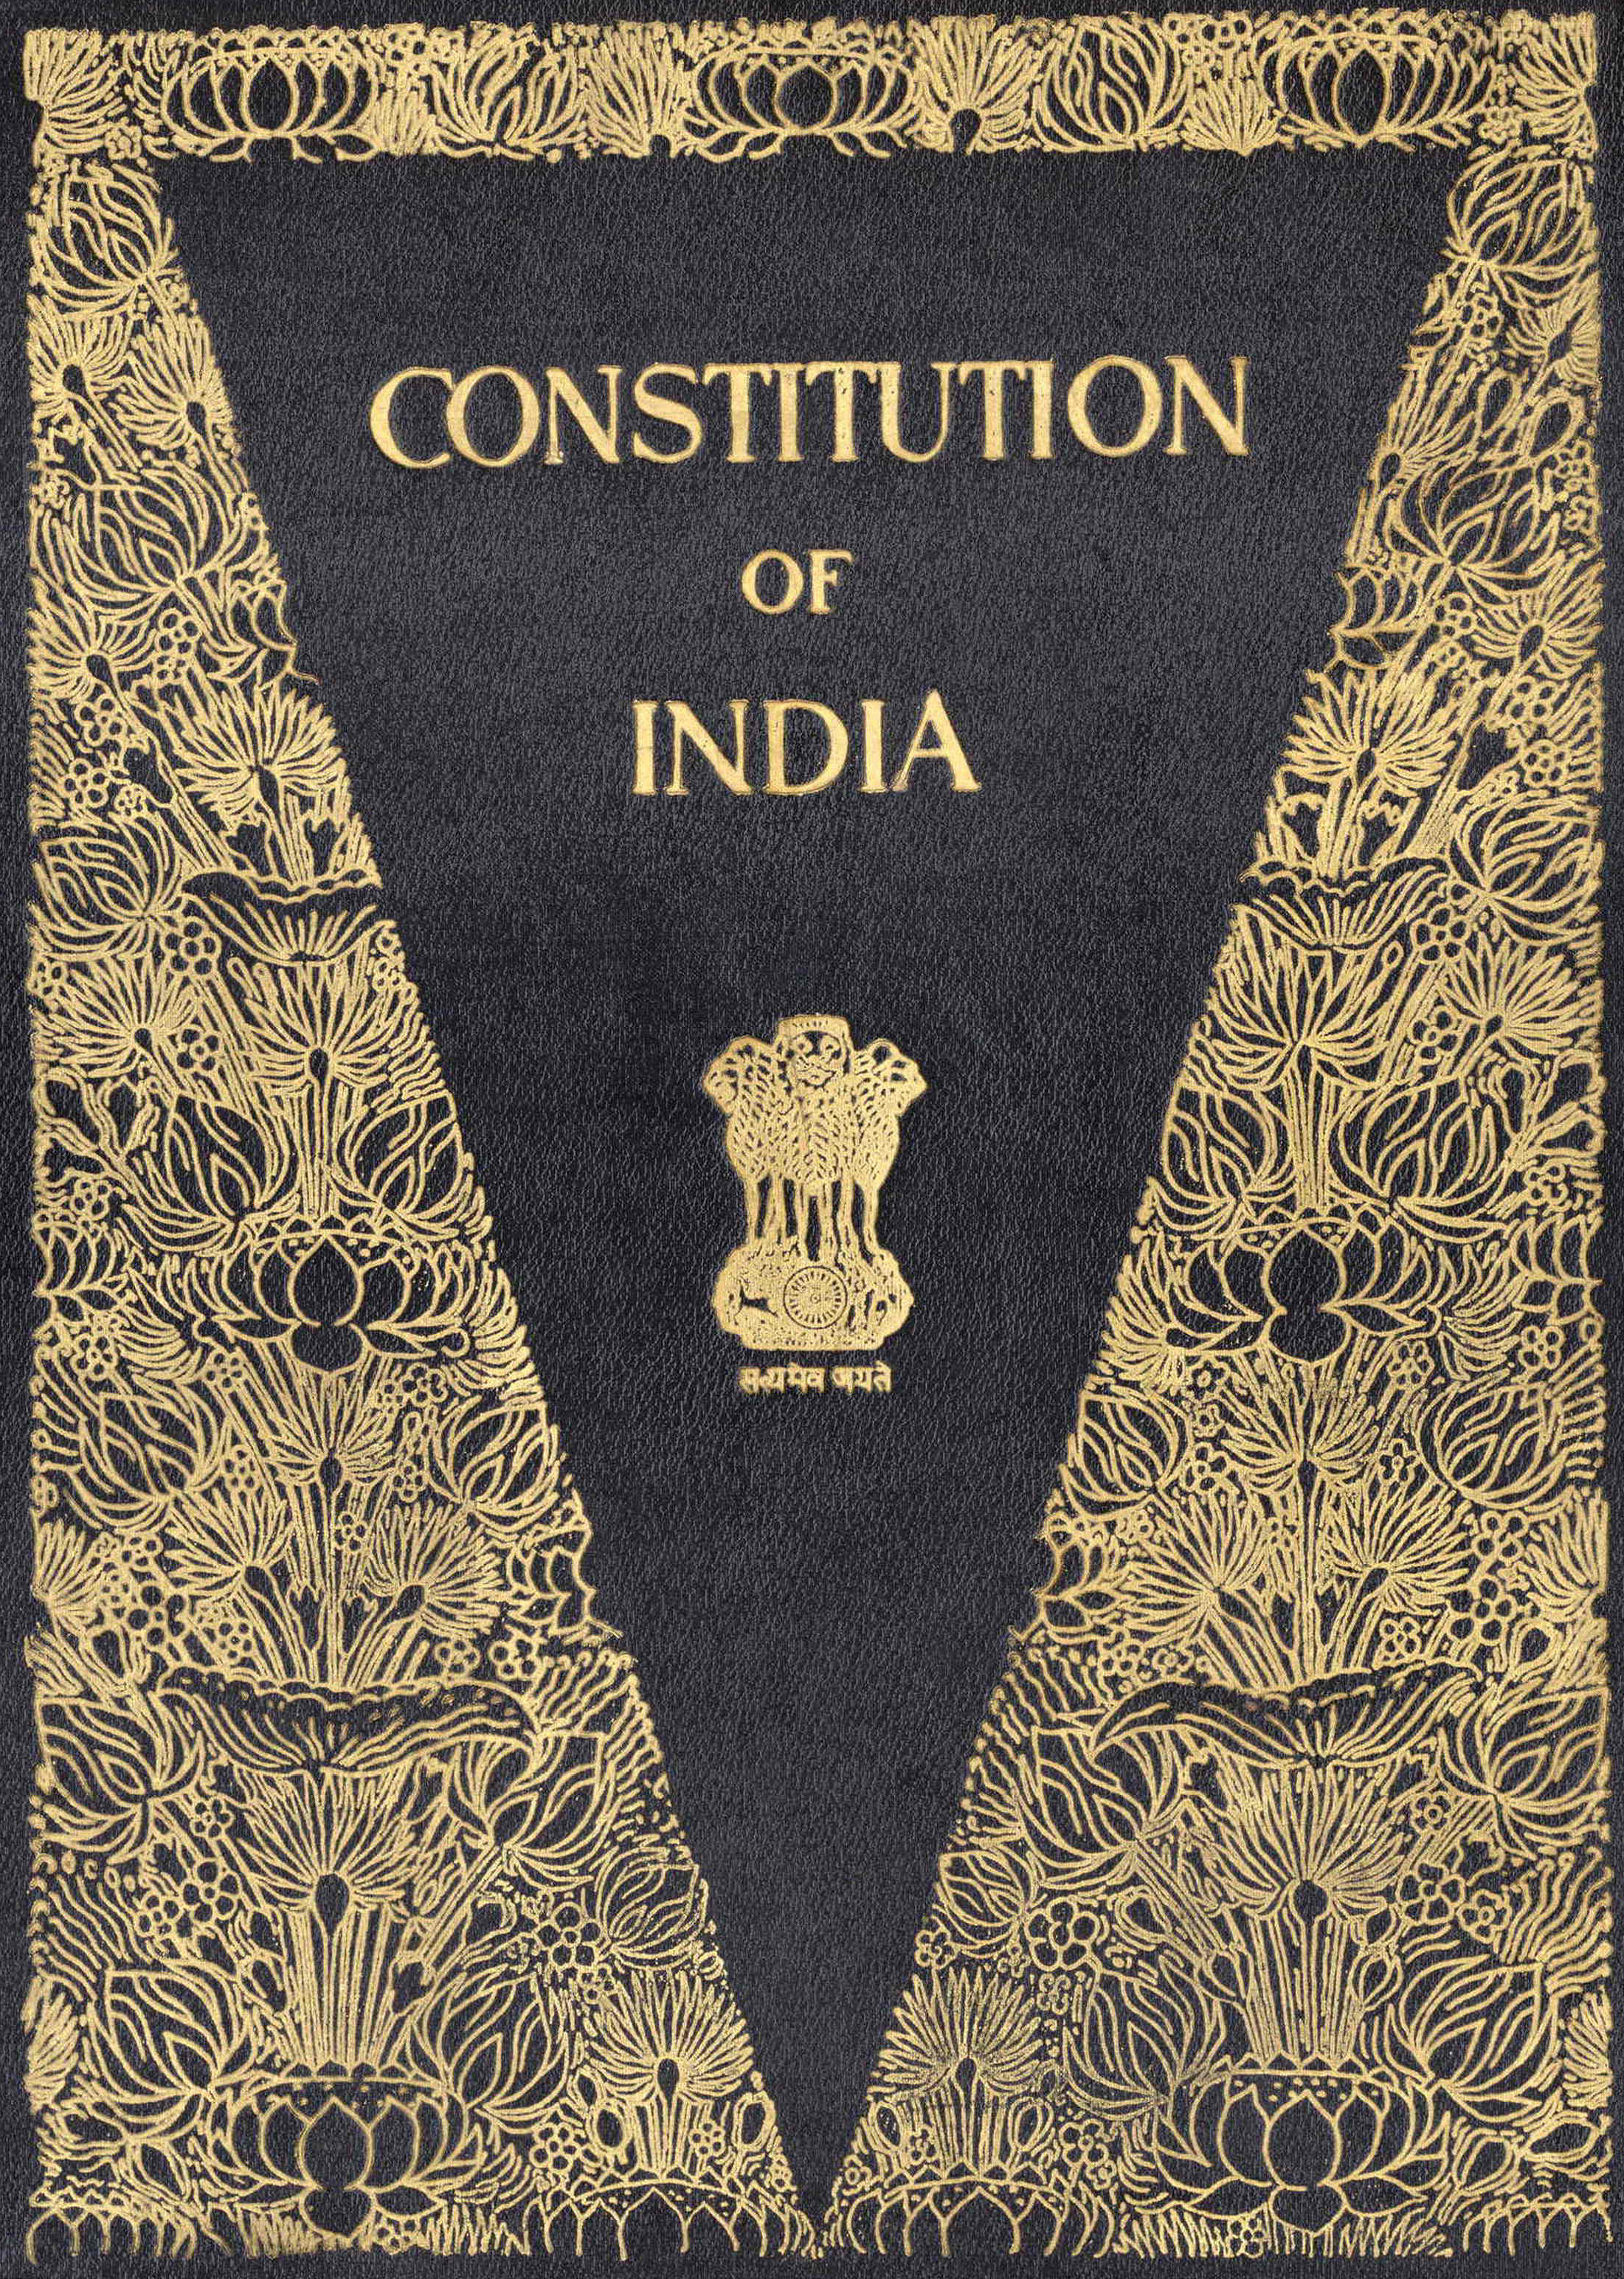 File:Constitution of India (calligraphic) Cover.png.